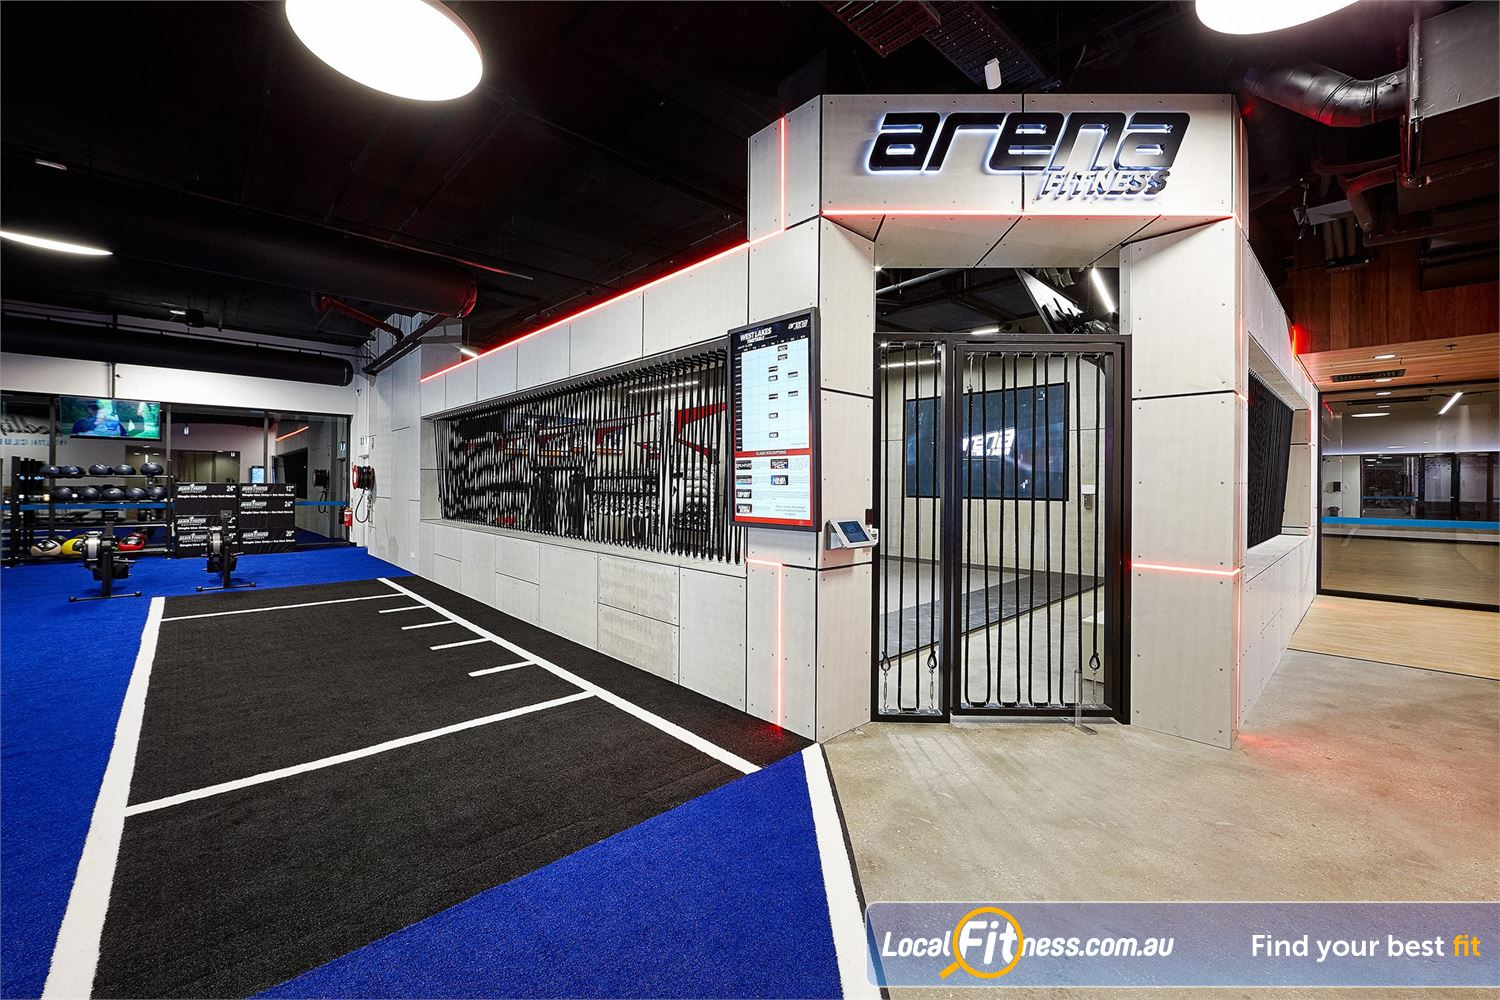 Goodlife Health Clubs West Lakes West Lakes Arena Fitness MMA - classes inspired by MMA and Boxing.